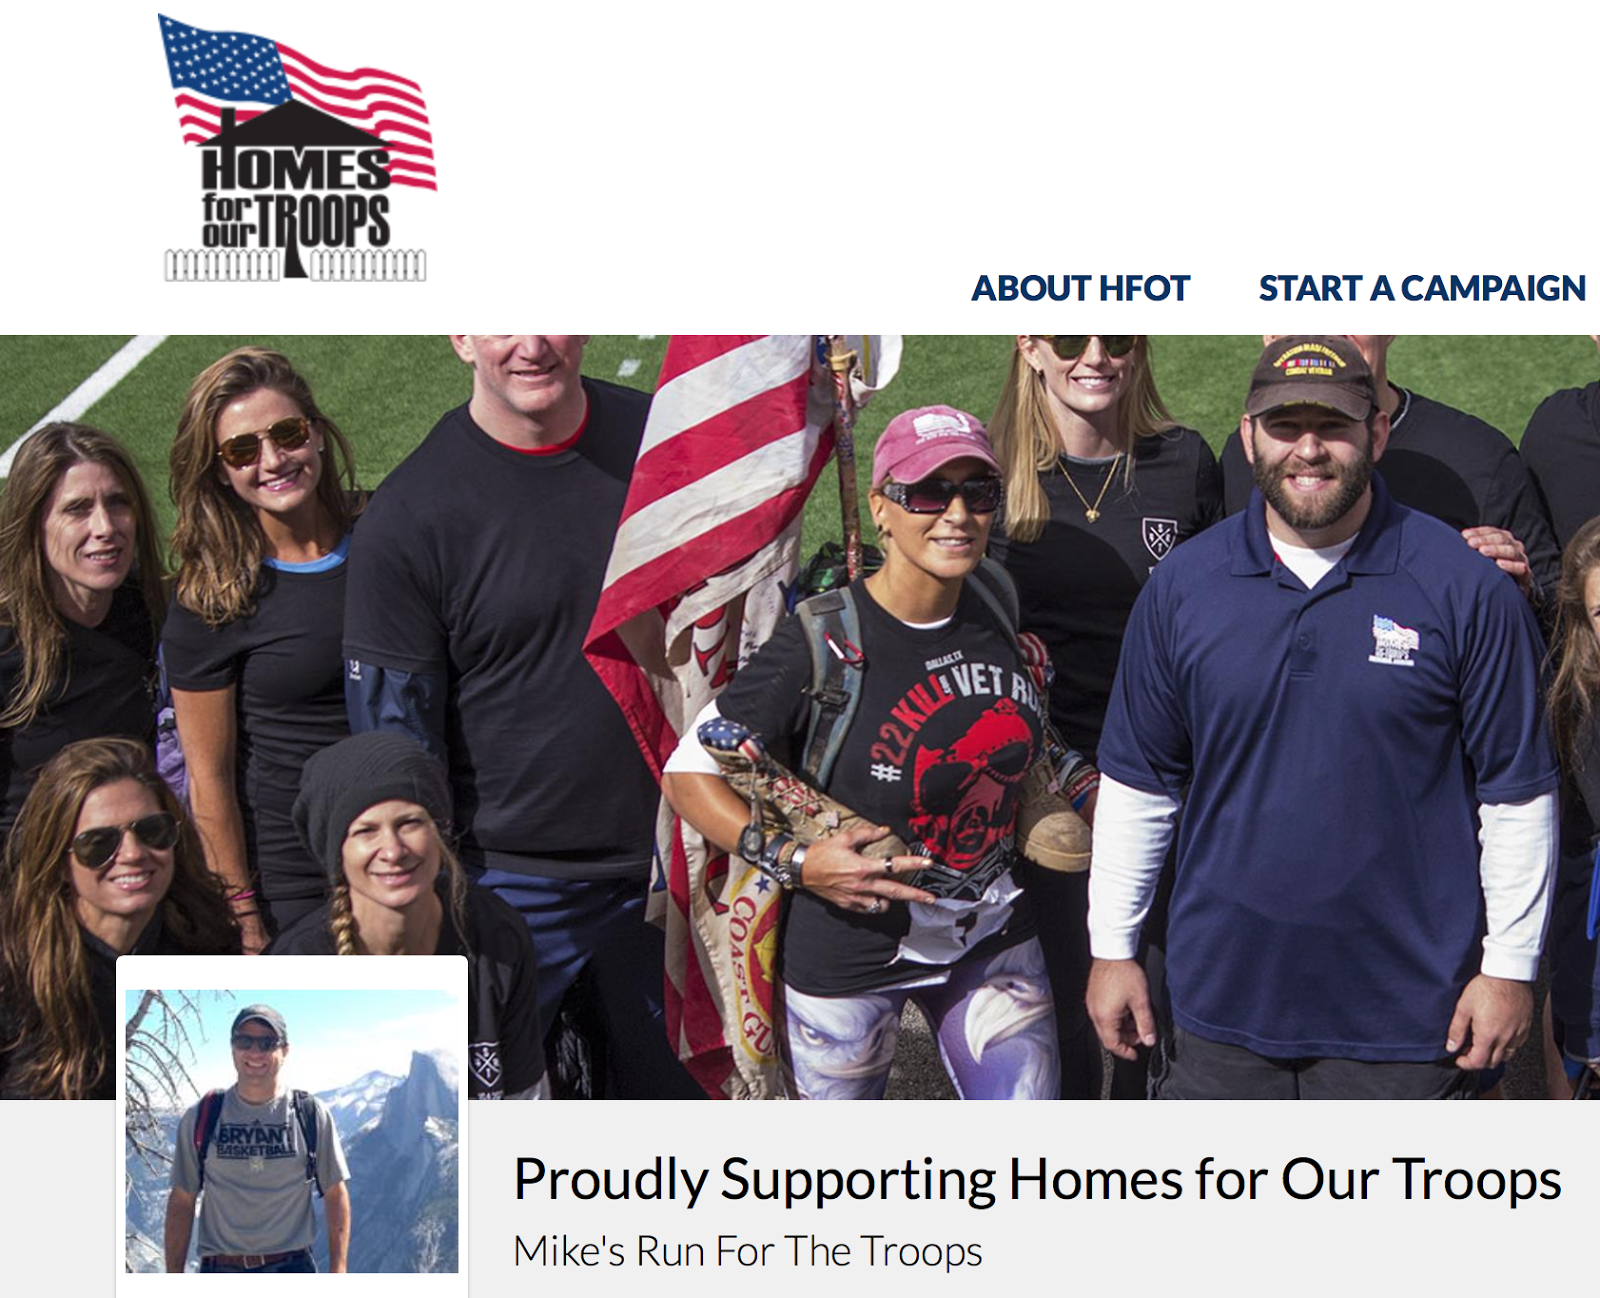 SUPPORT A GREAT CAUSE!  HOMES FOR OUR TROOPS